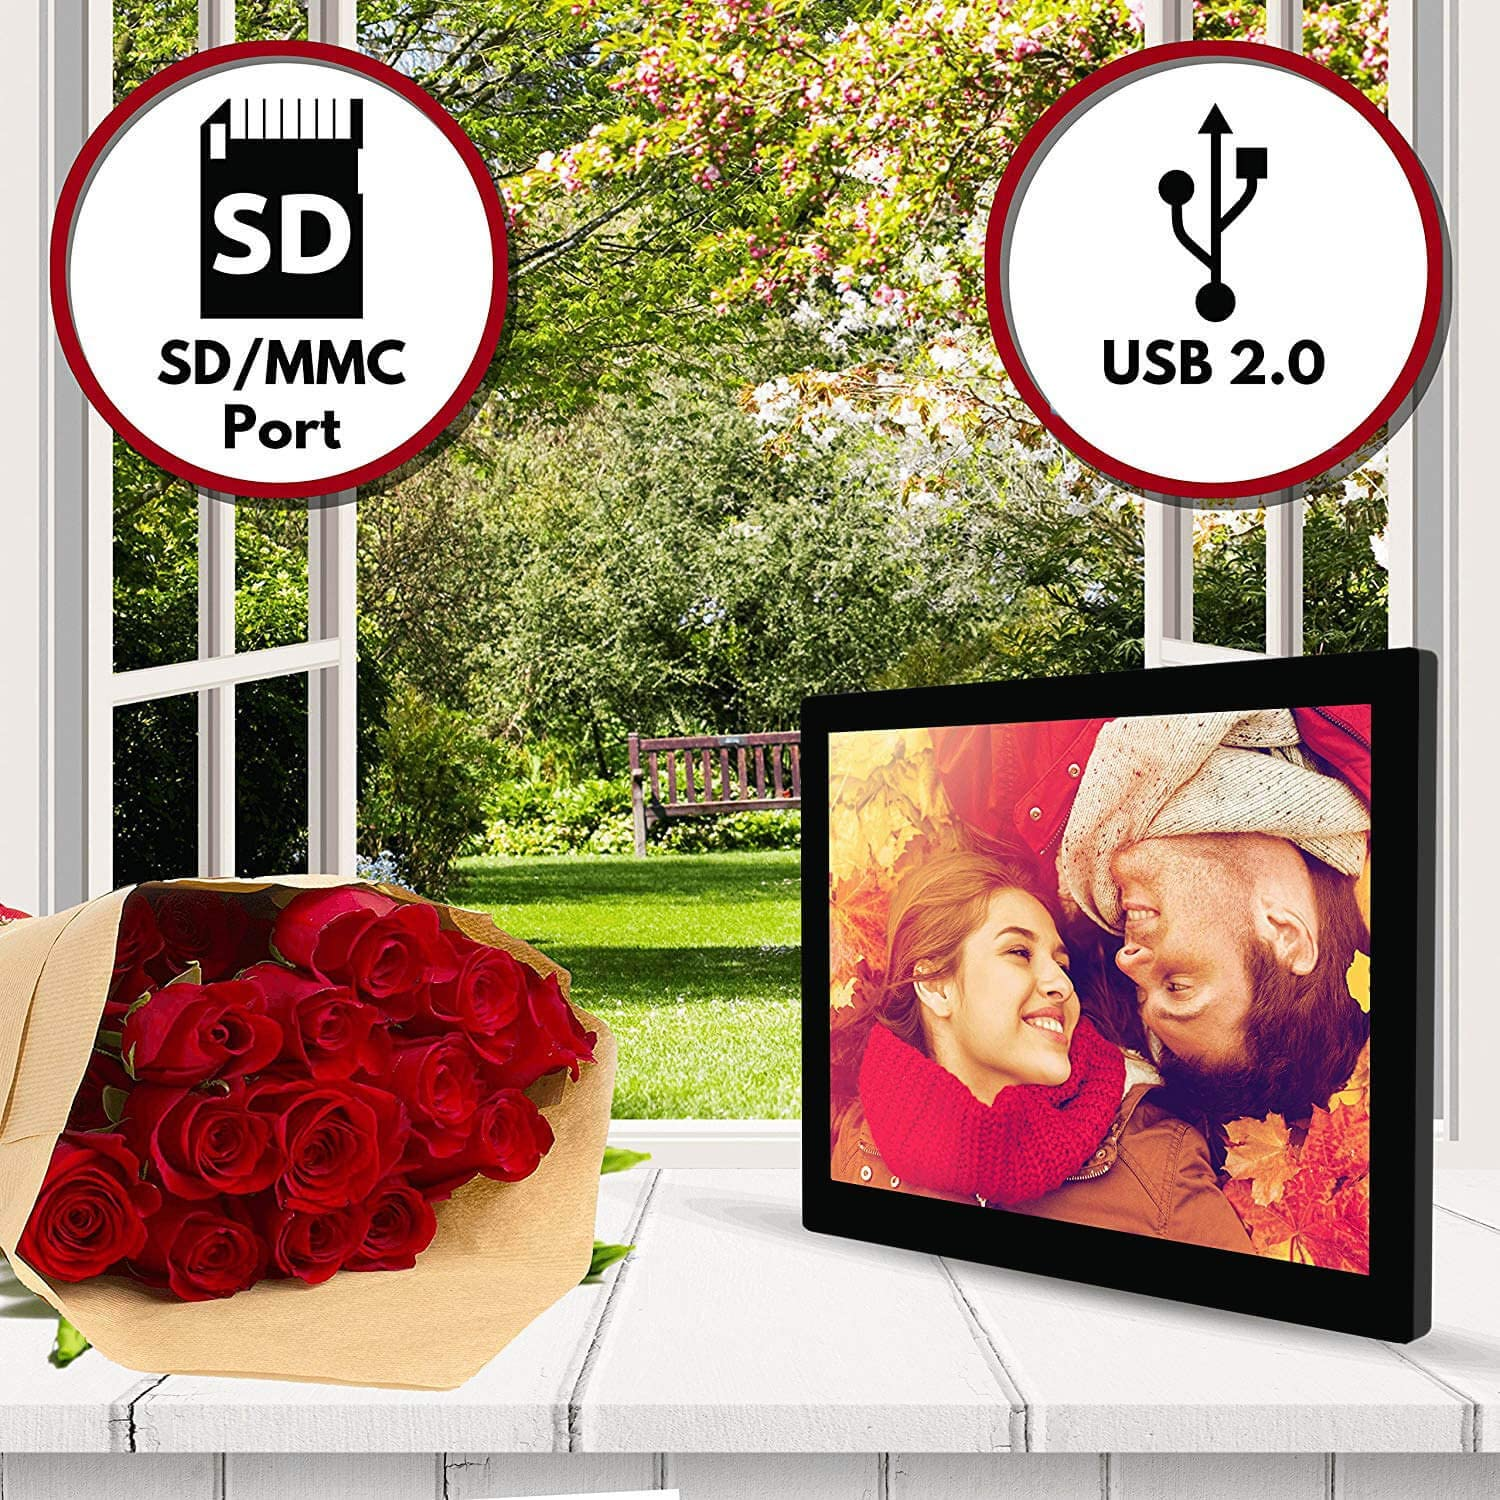 1080p High Definition Electronic Photo /& Video with 16GB Memory Motion Sensor Built-in Speakers /& Remote Control - 15.4 inch HD Digital Picture Frame Black